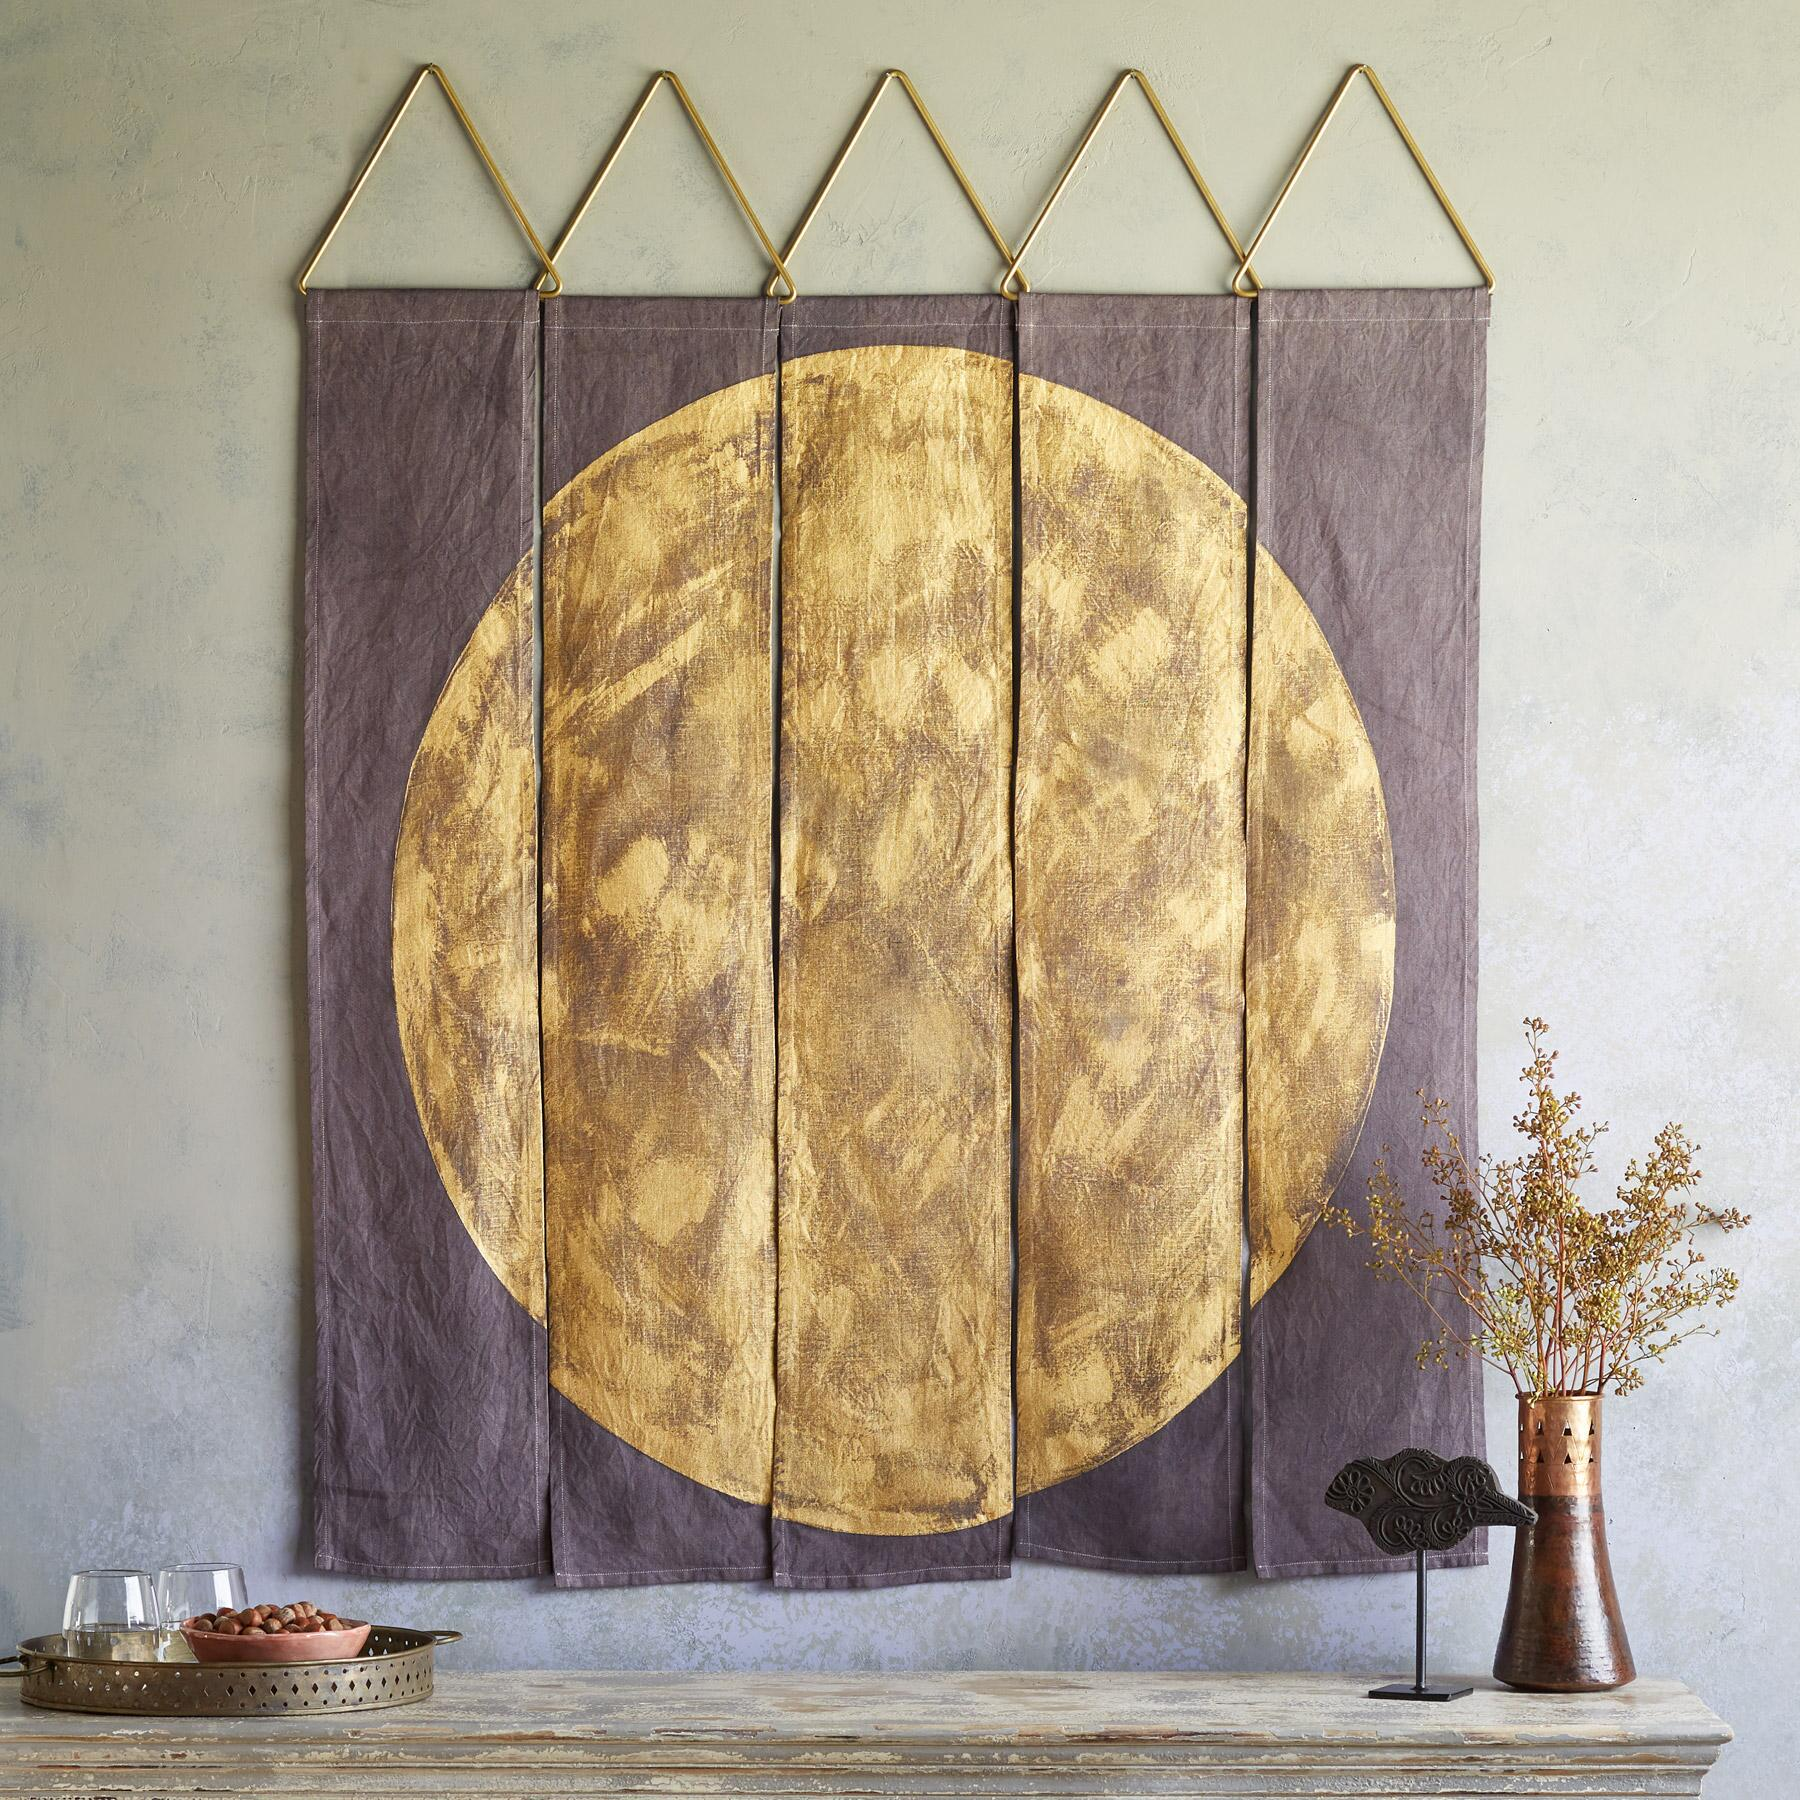 Moon Tapestry art - Sundance Catalog Home Decor + A Few of My Artisan Favorite Things!